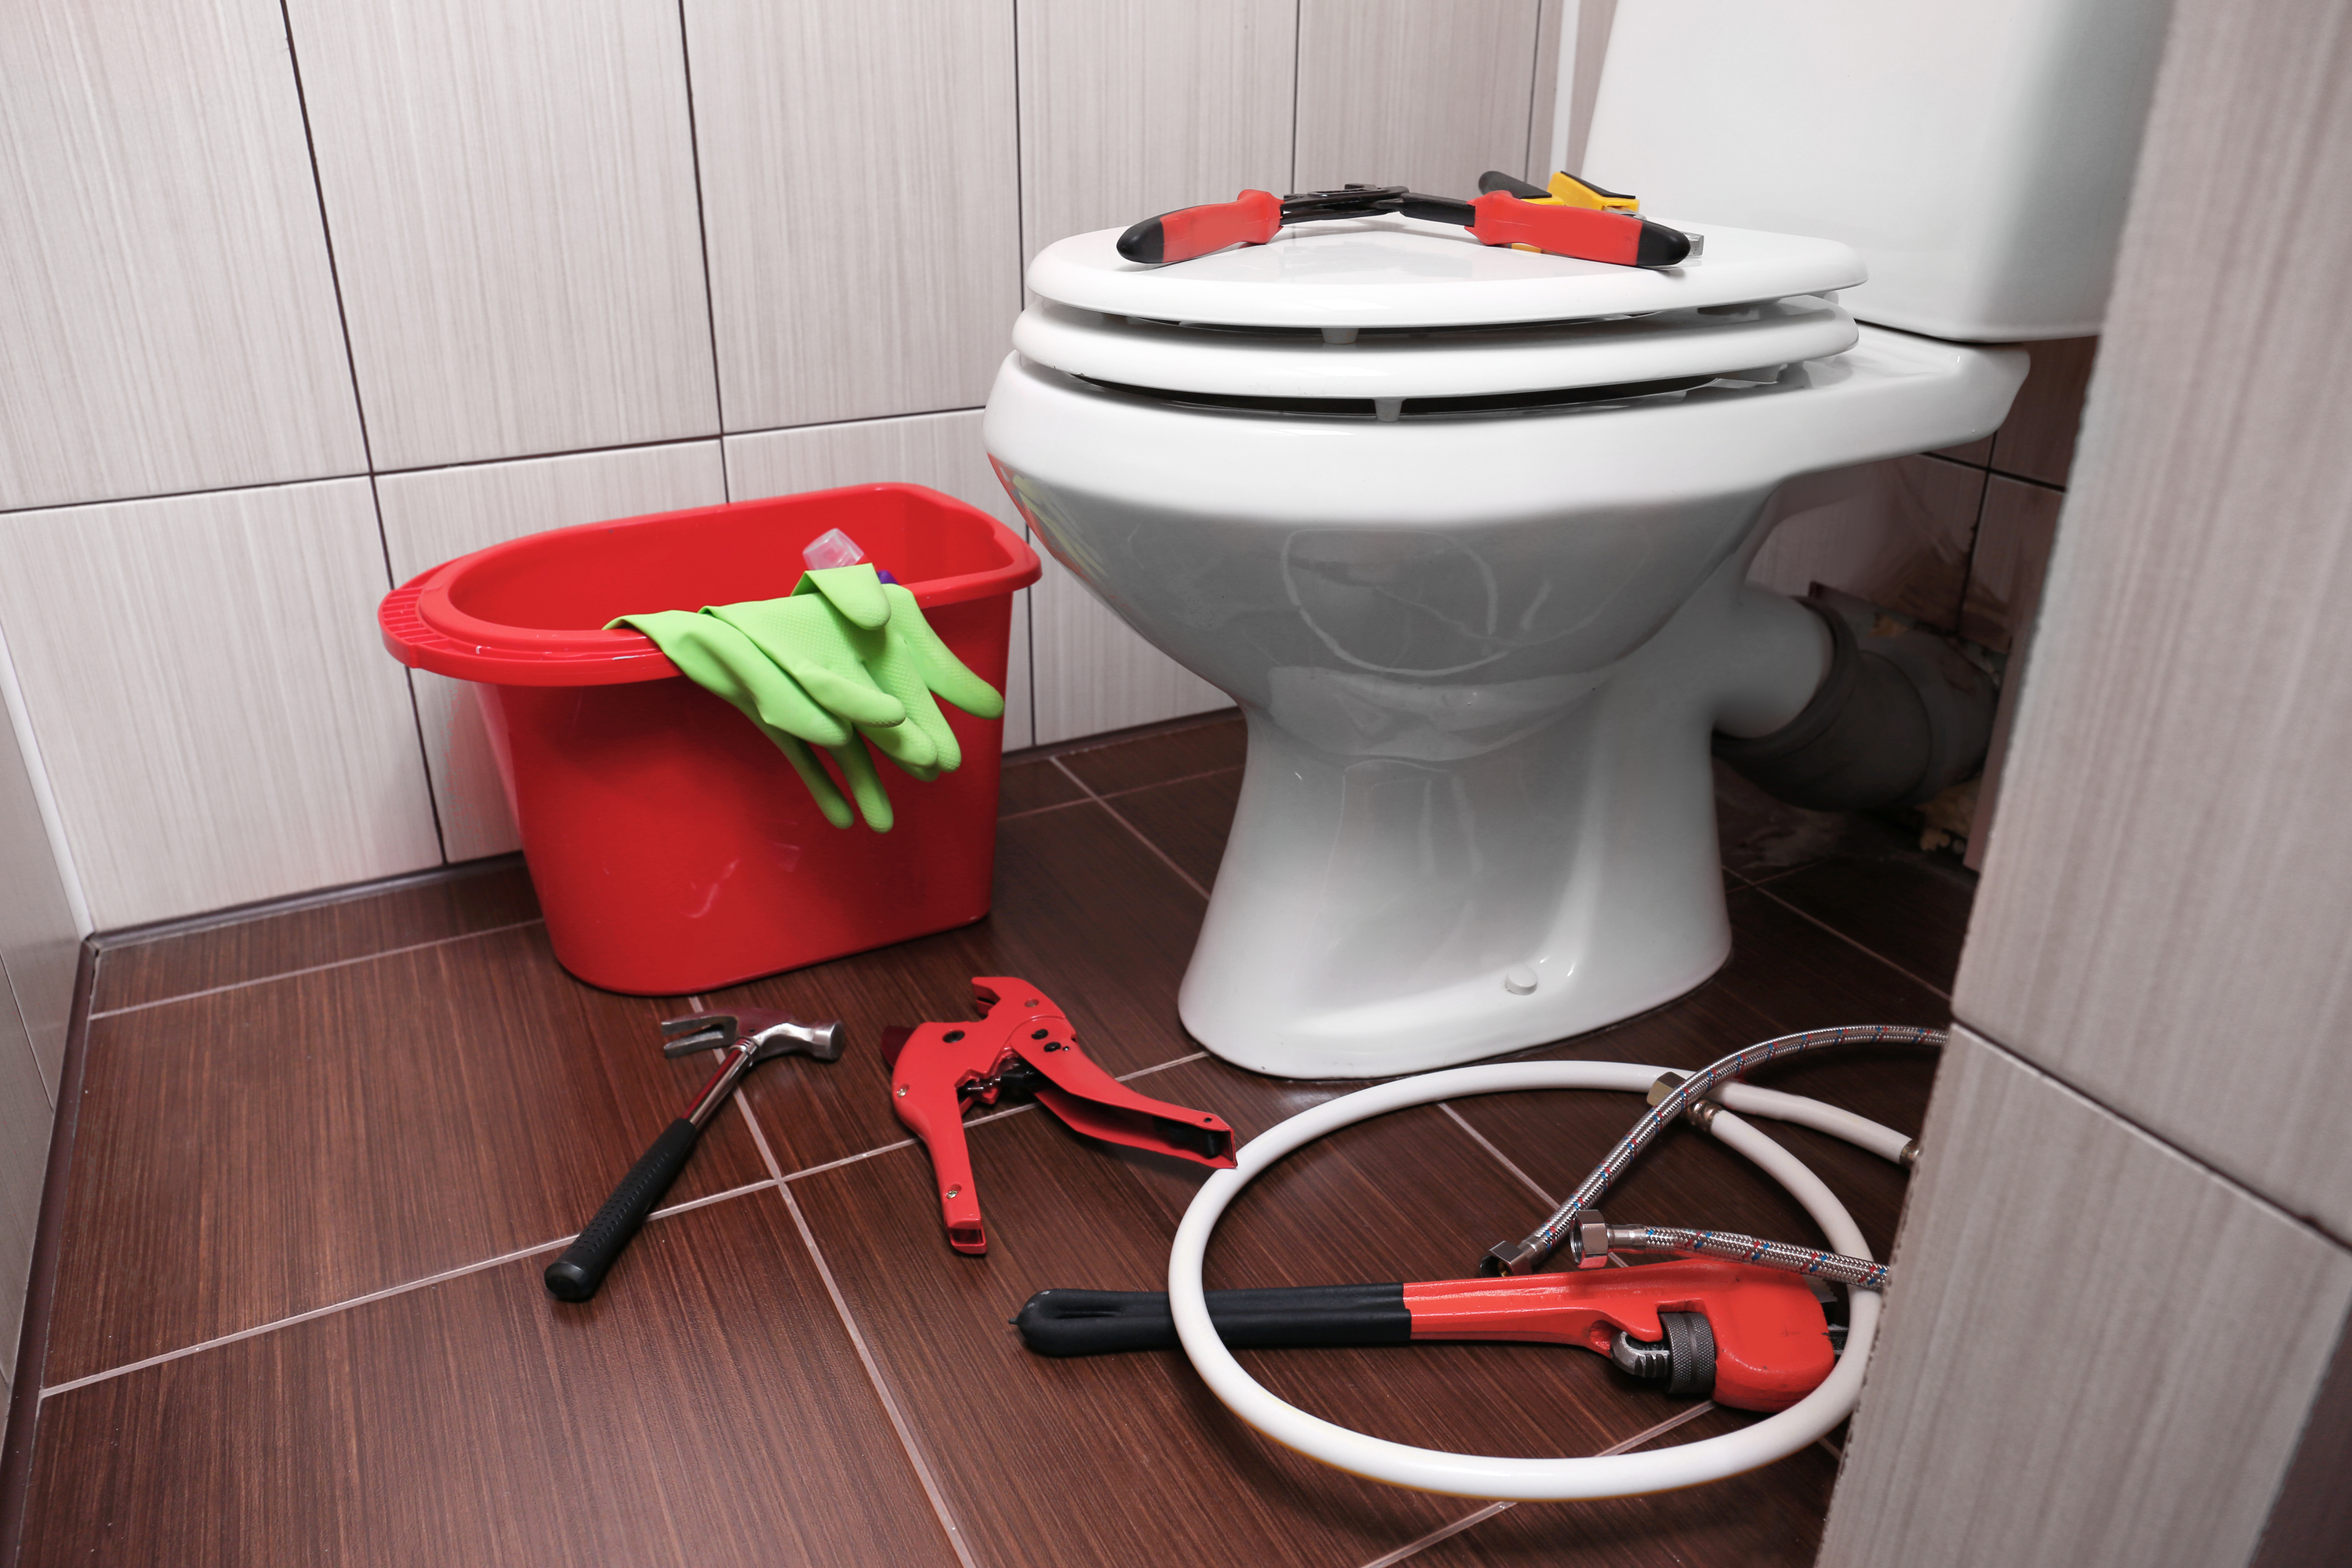 There is nothing worse than when your toilet clogs. Here are some clogged toilet bowl tips that will save you some money!